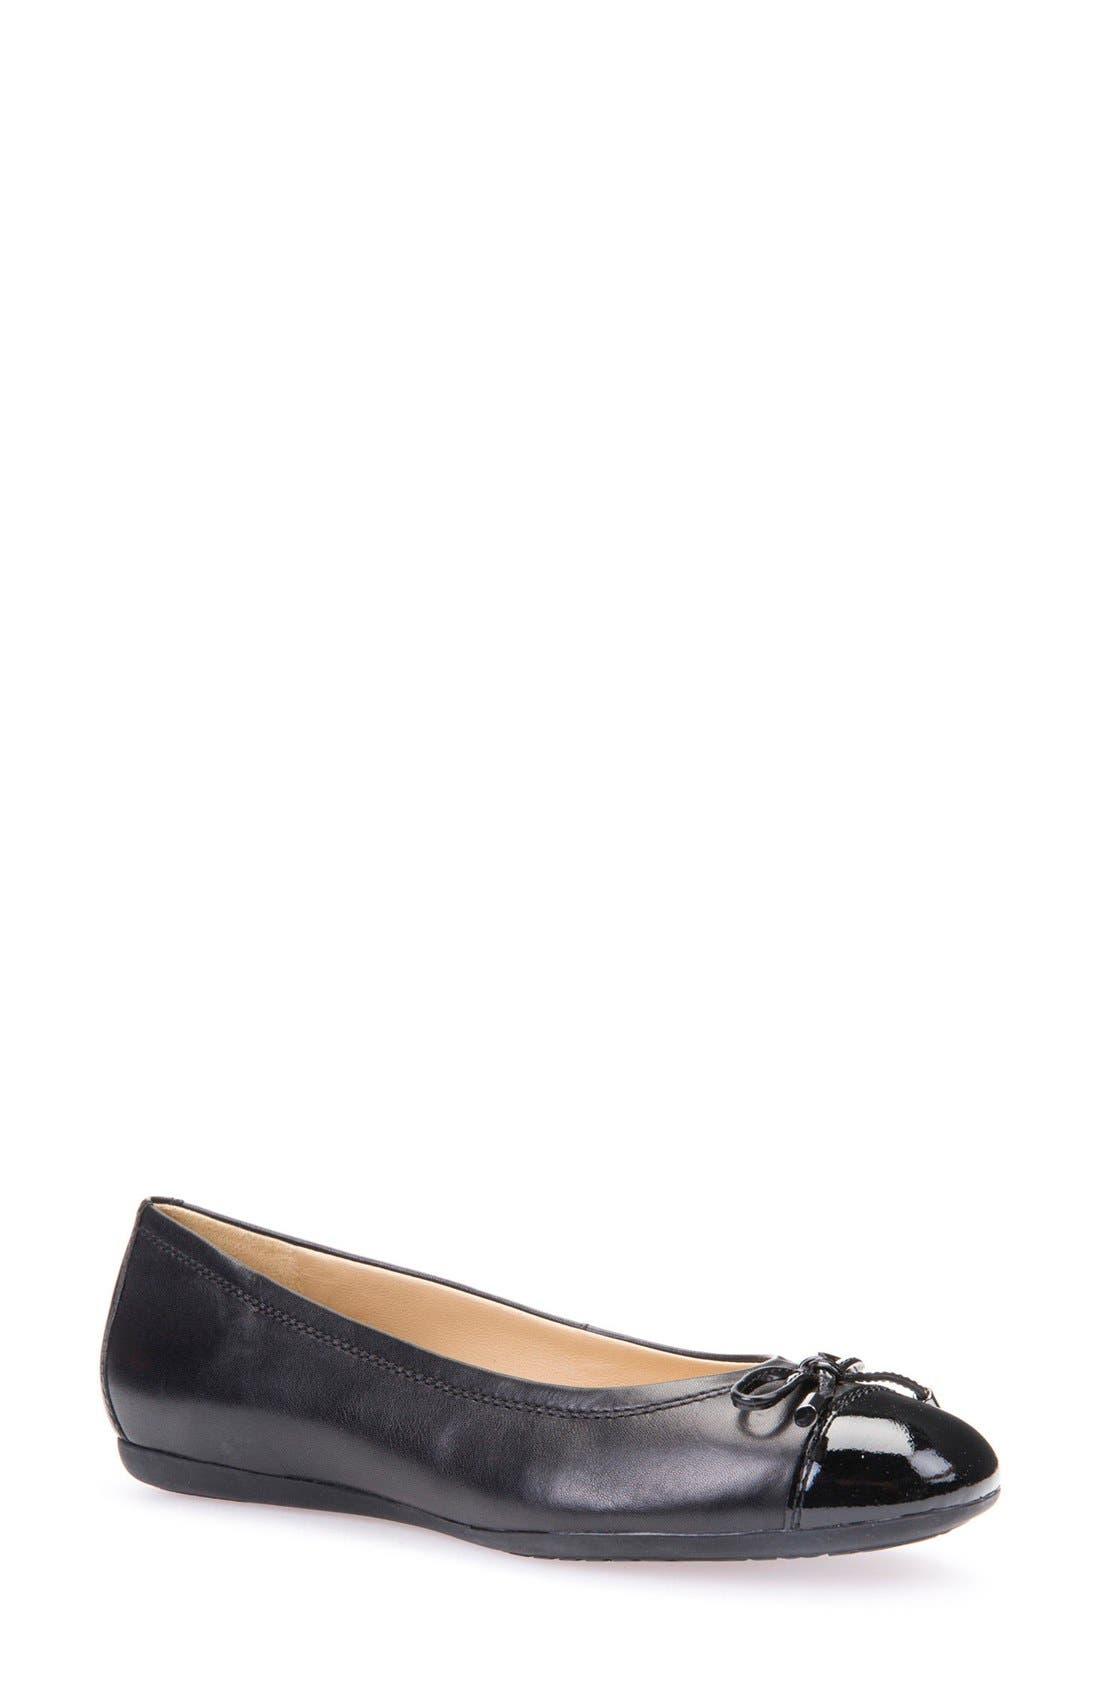 'Lola 16' Cap Toe Ballet Flat,                             Main thumbnail 1, color,